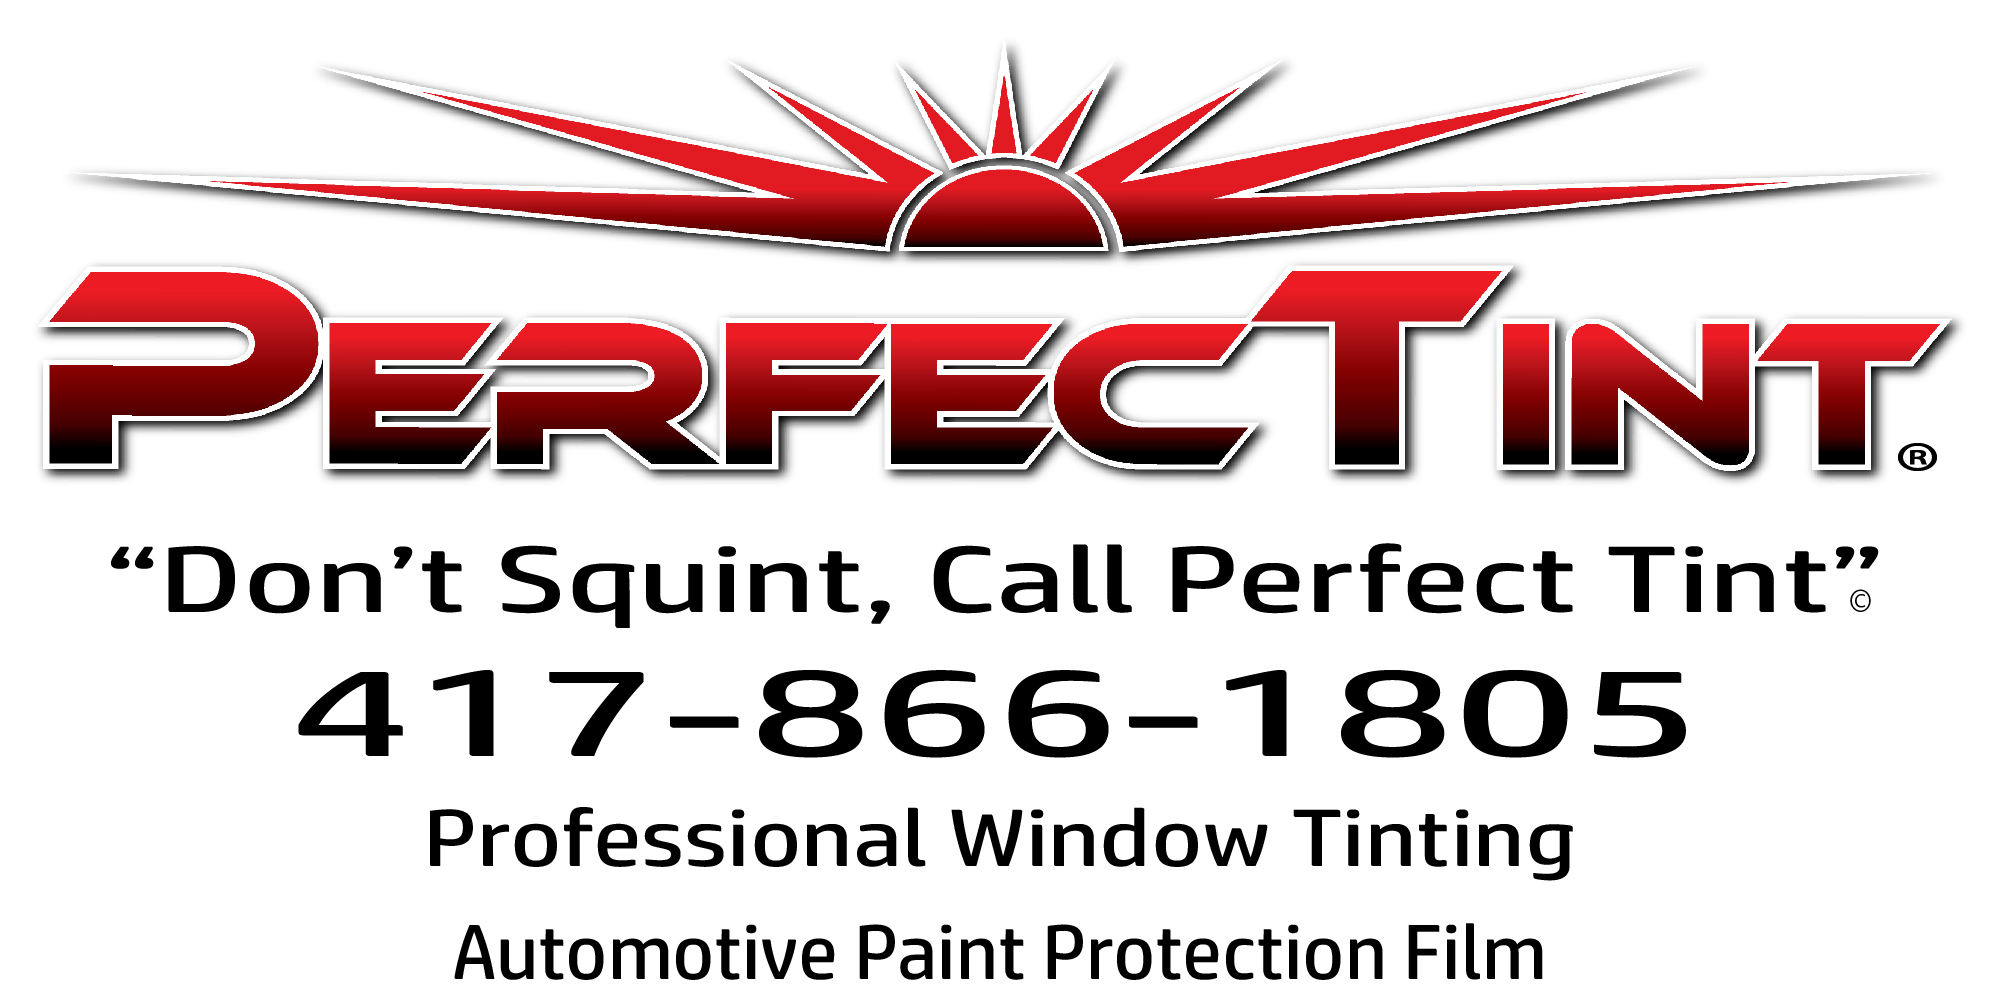 Perfect Tint Full Business Card Size Ad